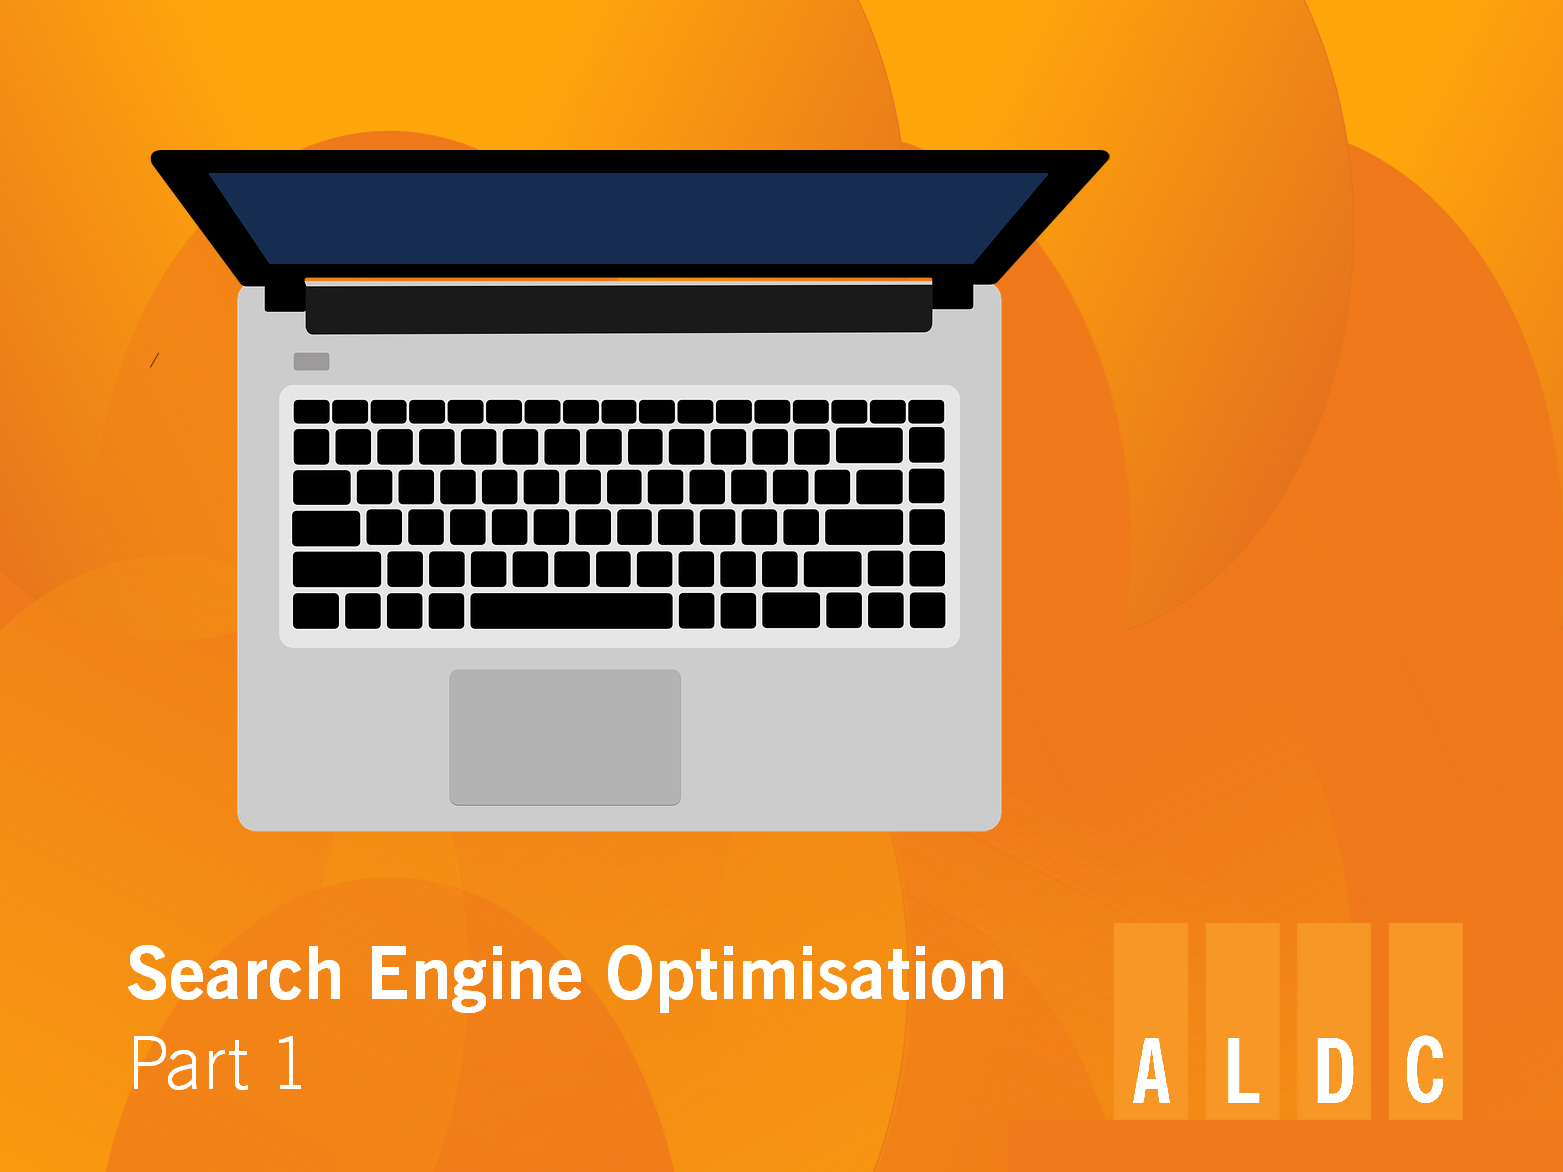 ALDC Introduction to Search Engine Optimisation (SEO) Part 1